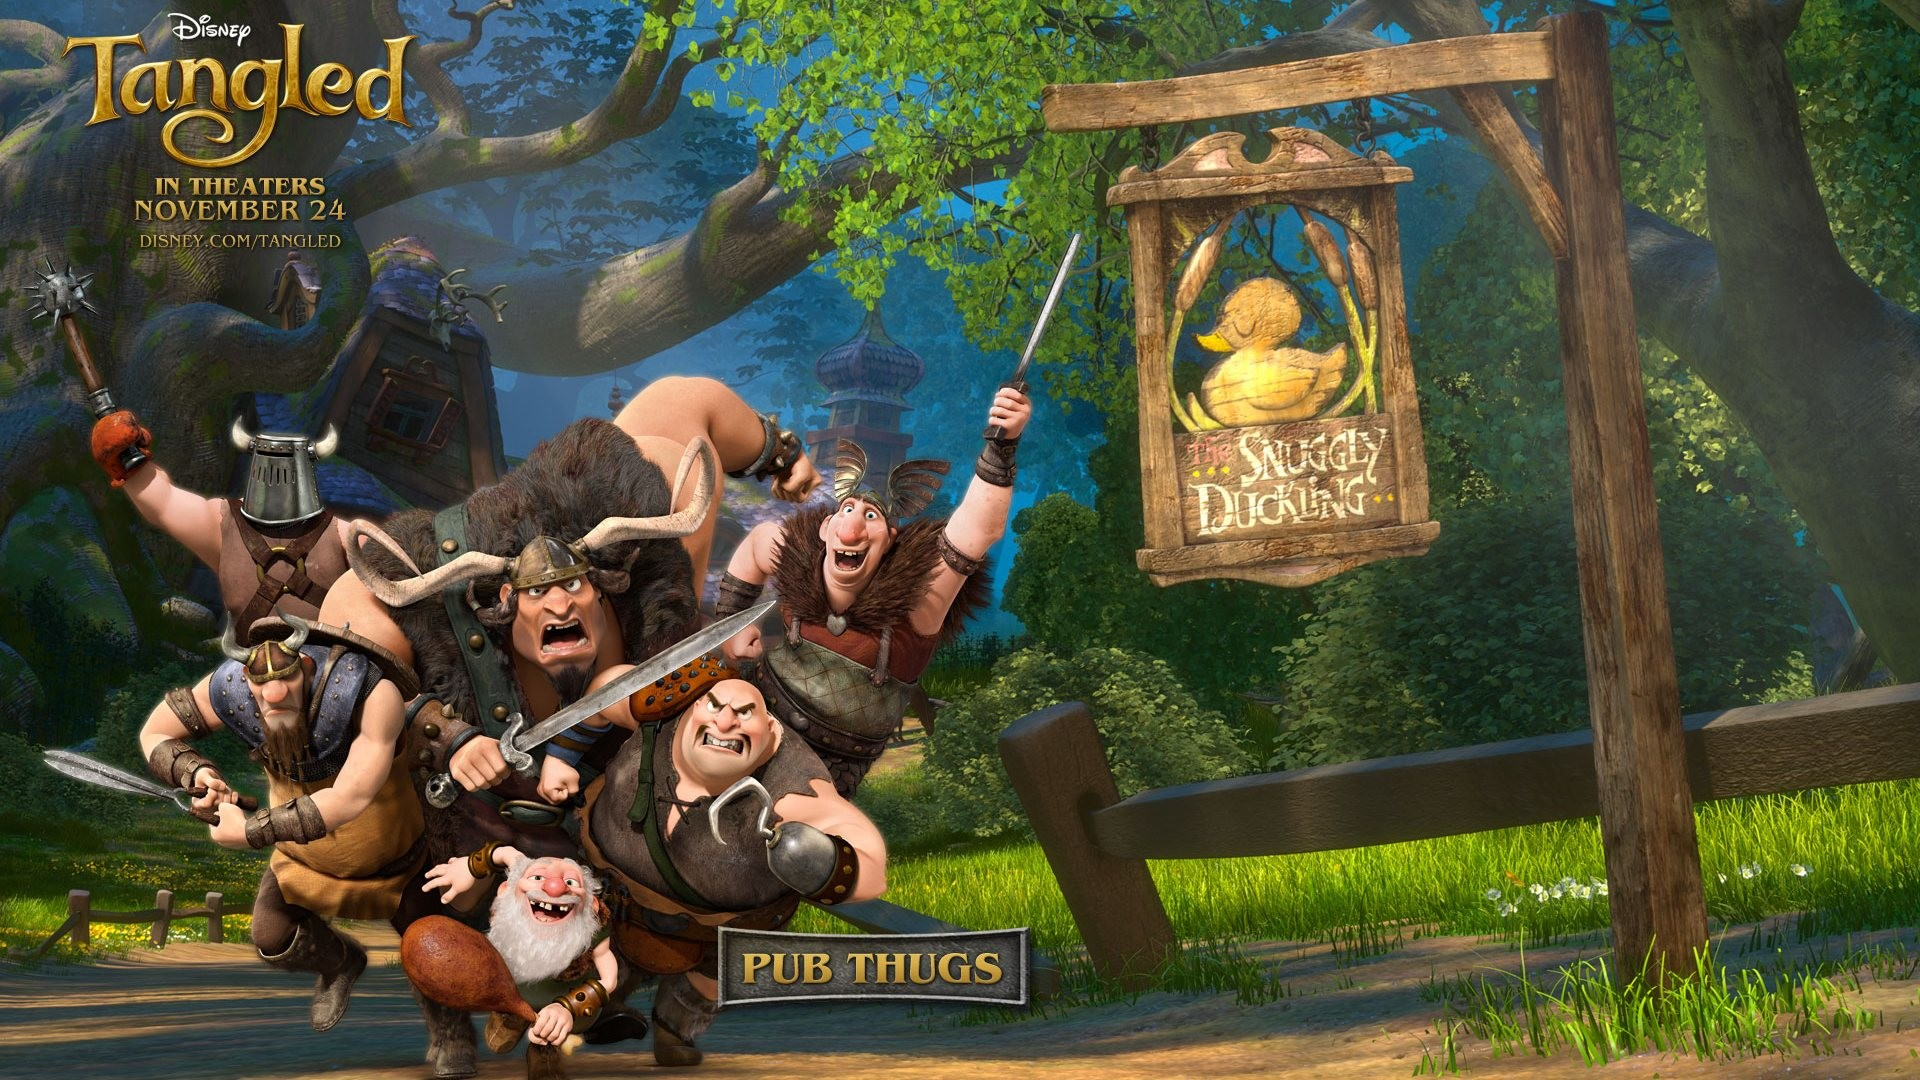 tangled pub thugs disney